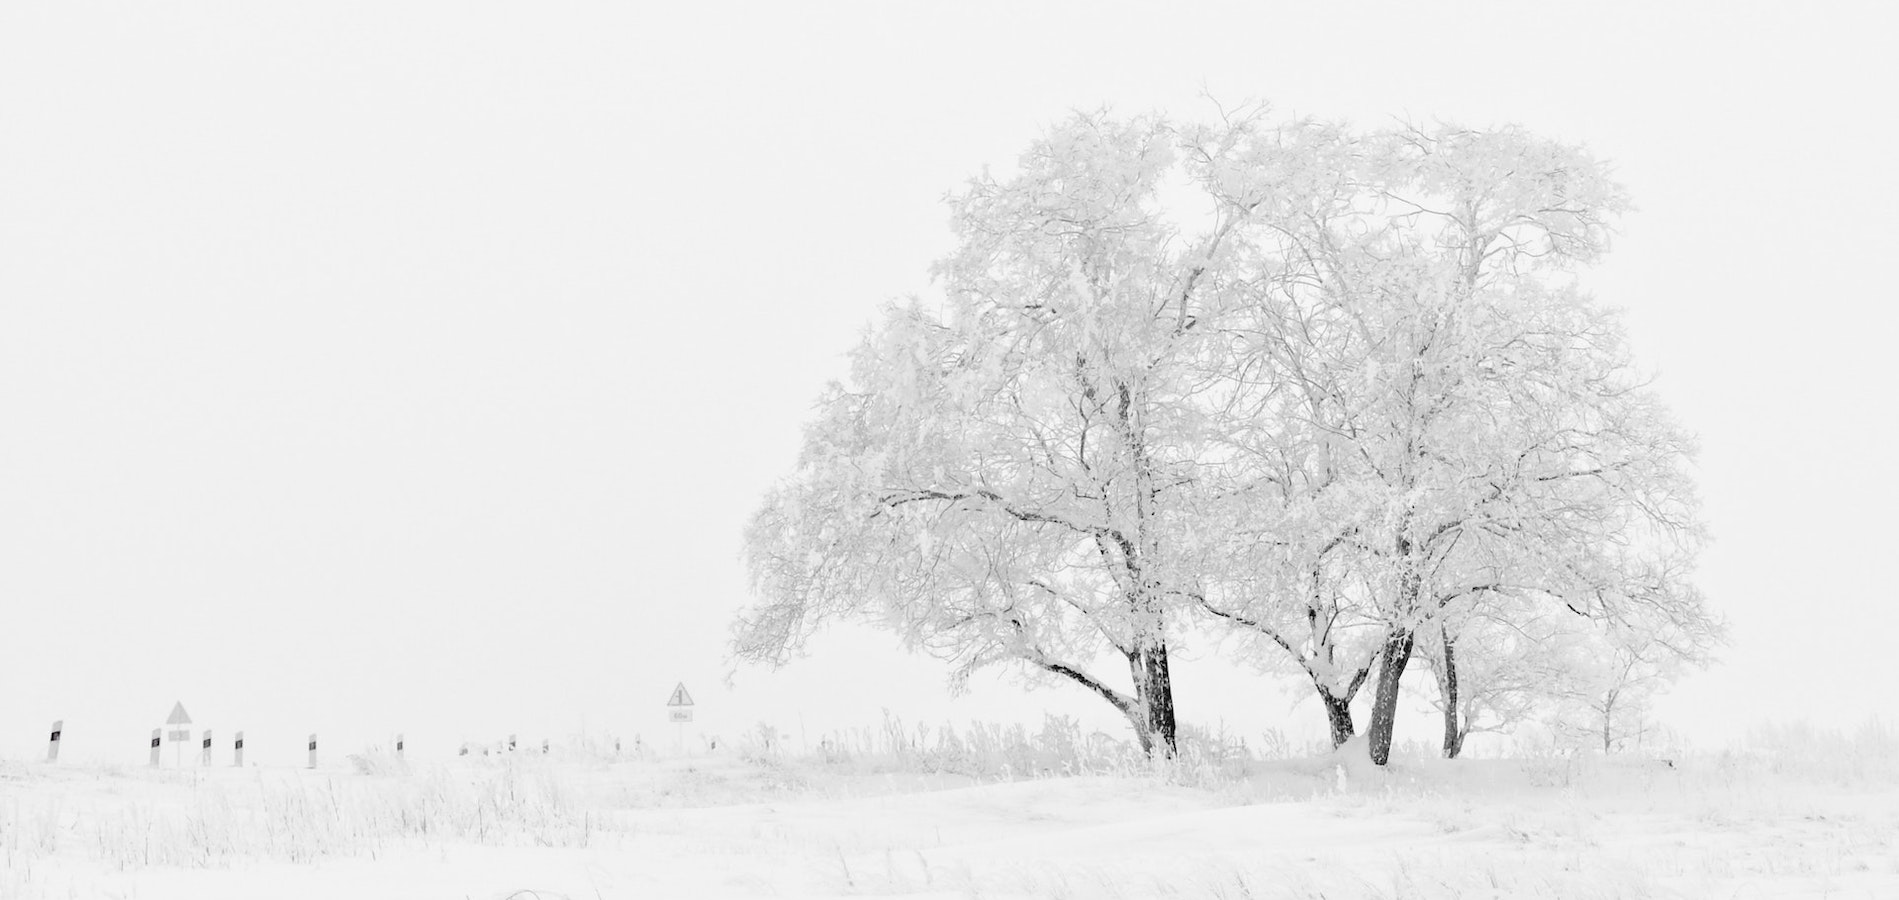 Photo of snowy tree taken using winter photography tips